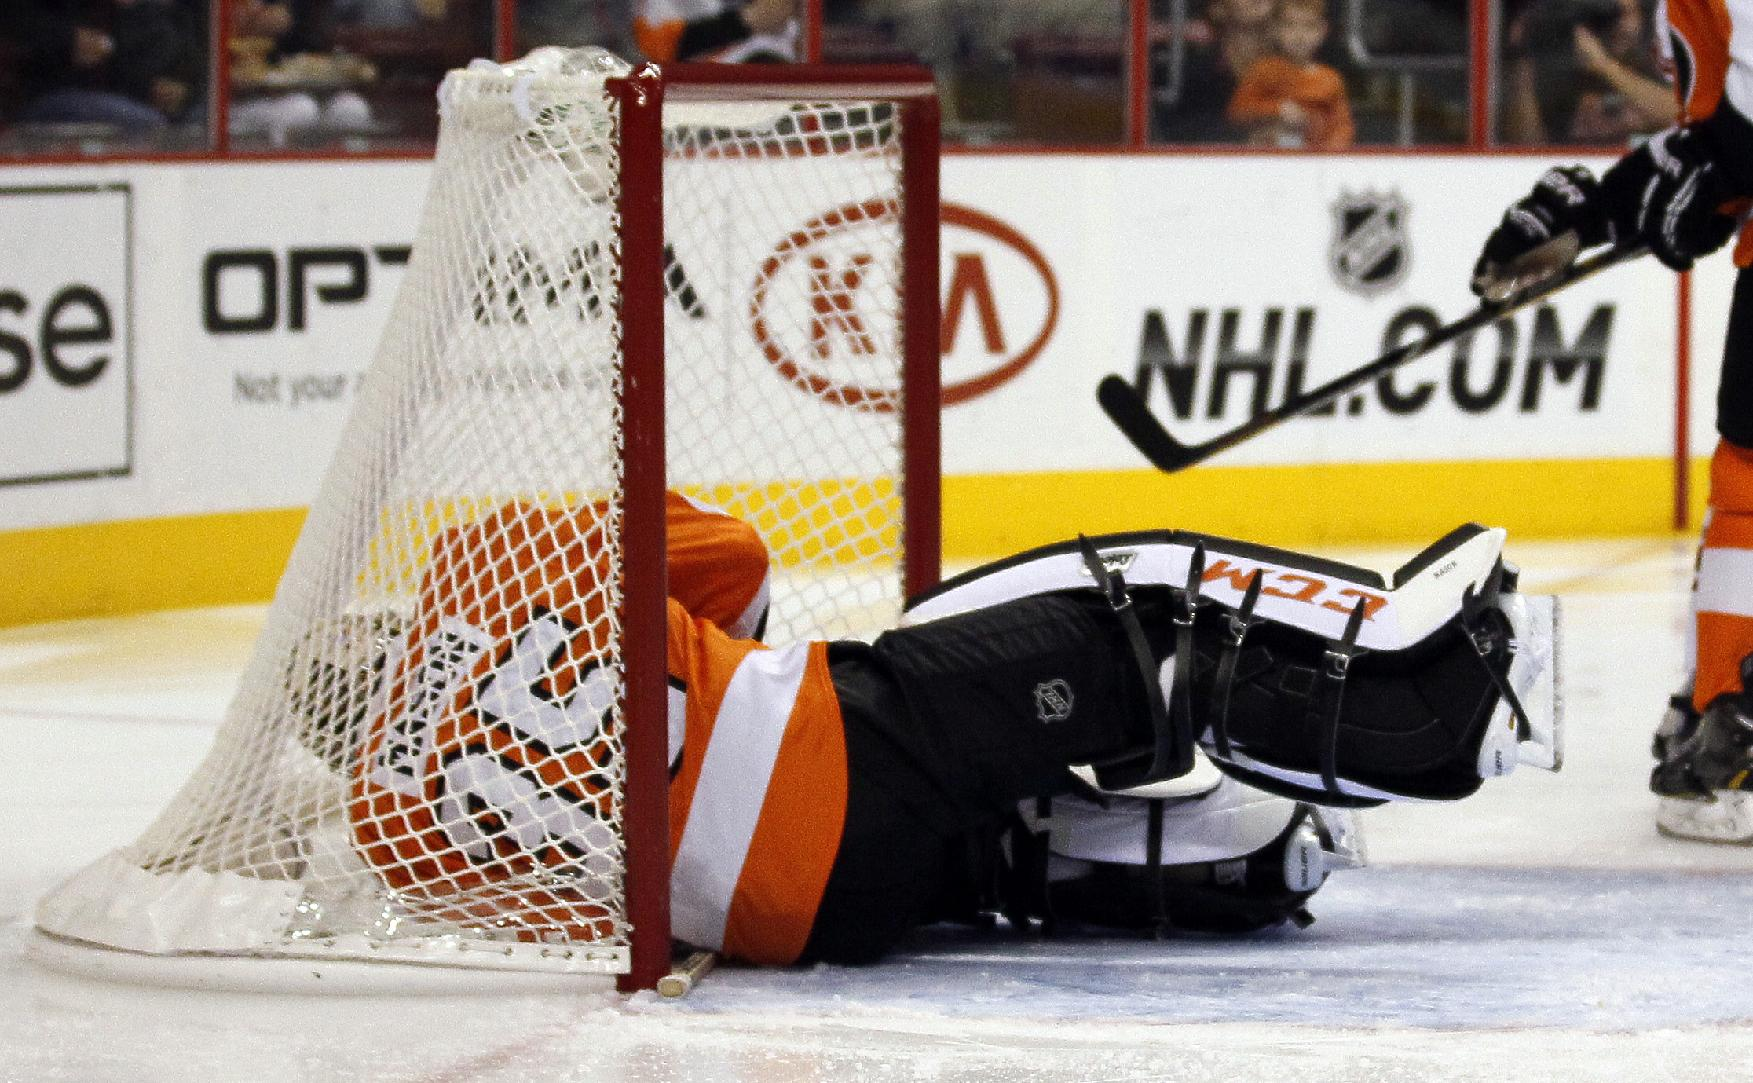 Philadelphia Flyers goalie Steve Mason is down in the net after failing to stop a shot by Phoenix Coyotes' Rob Klinkhammer in the first period of an NHL hockey game on Friday, Oct. 11, 2013, in Philadelphia